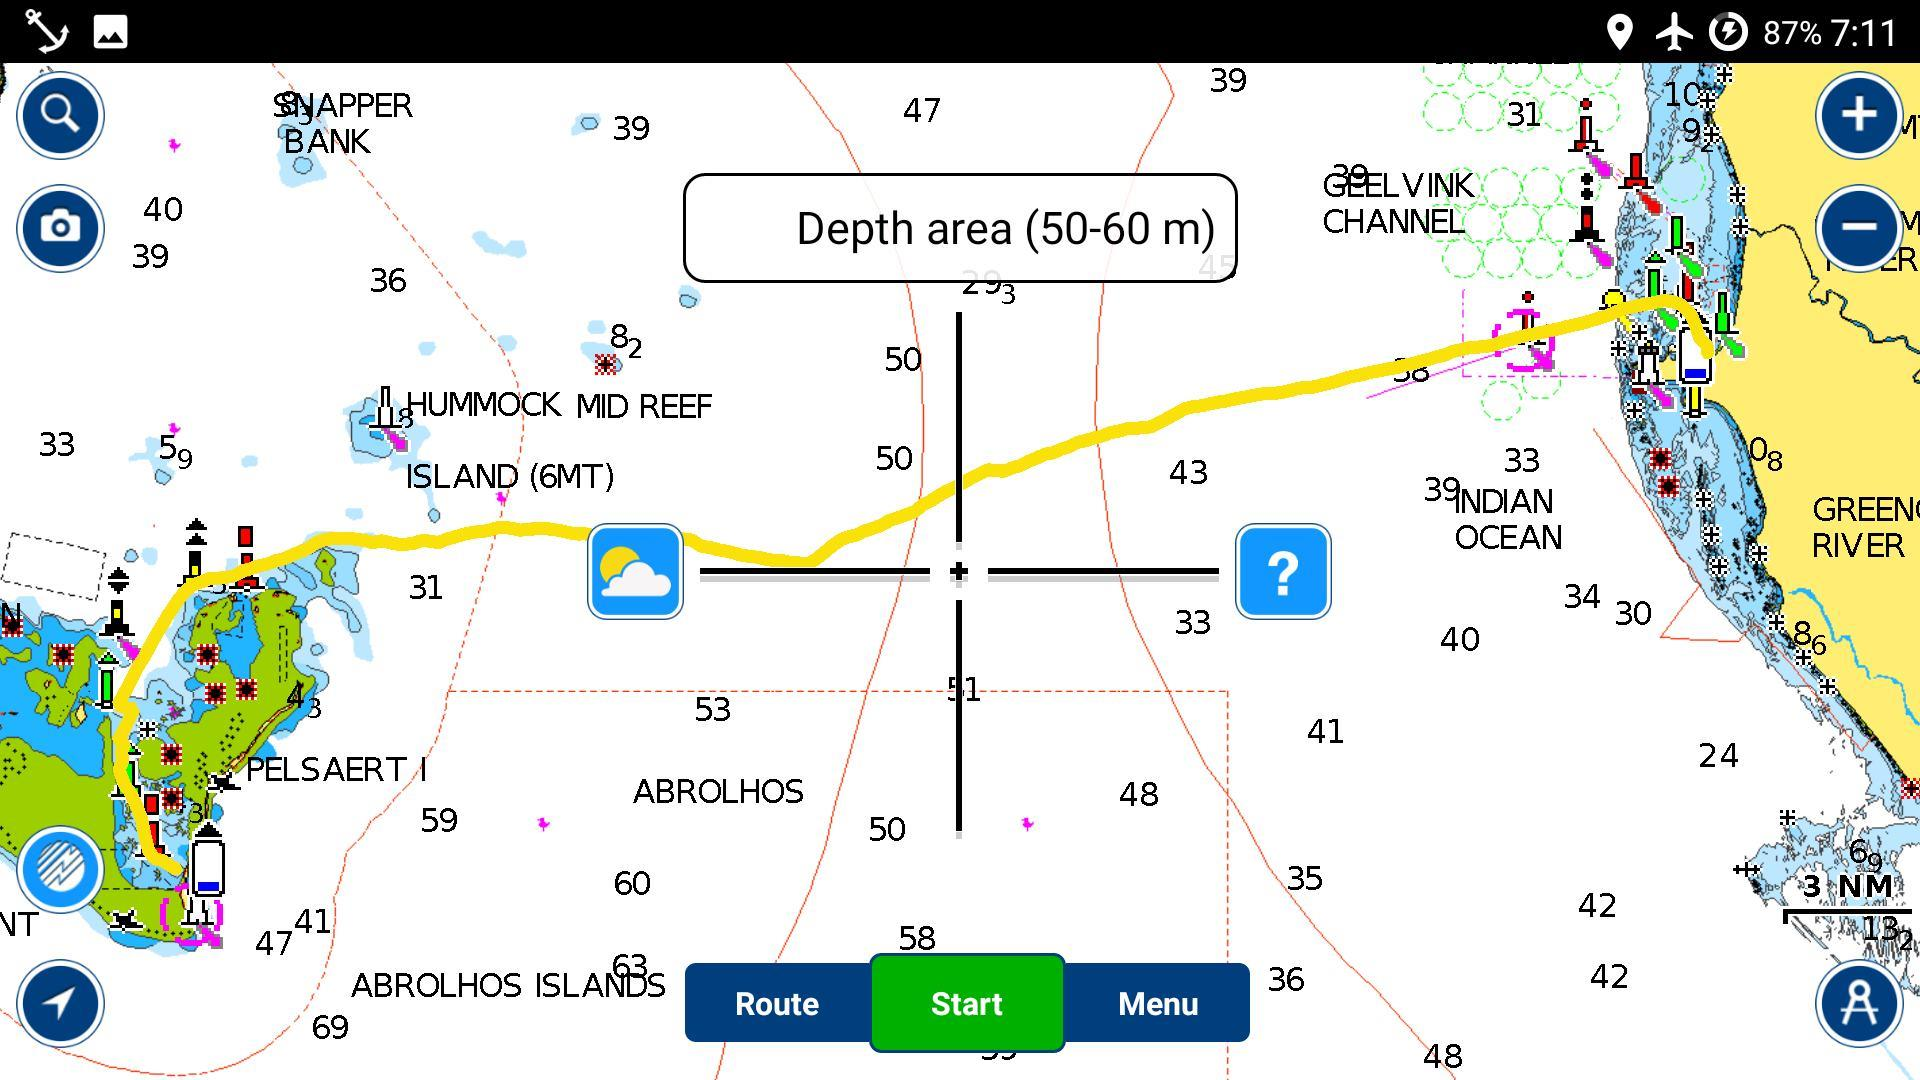 pelsaert to geraldton map